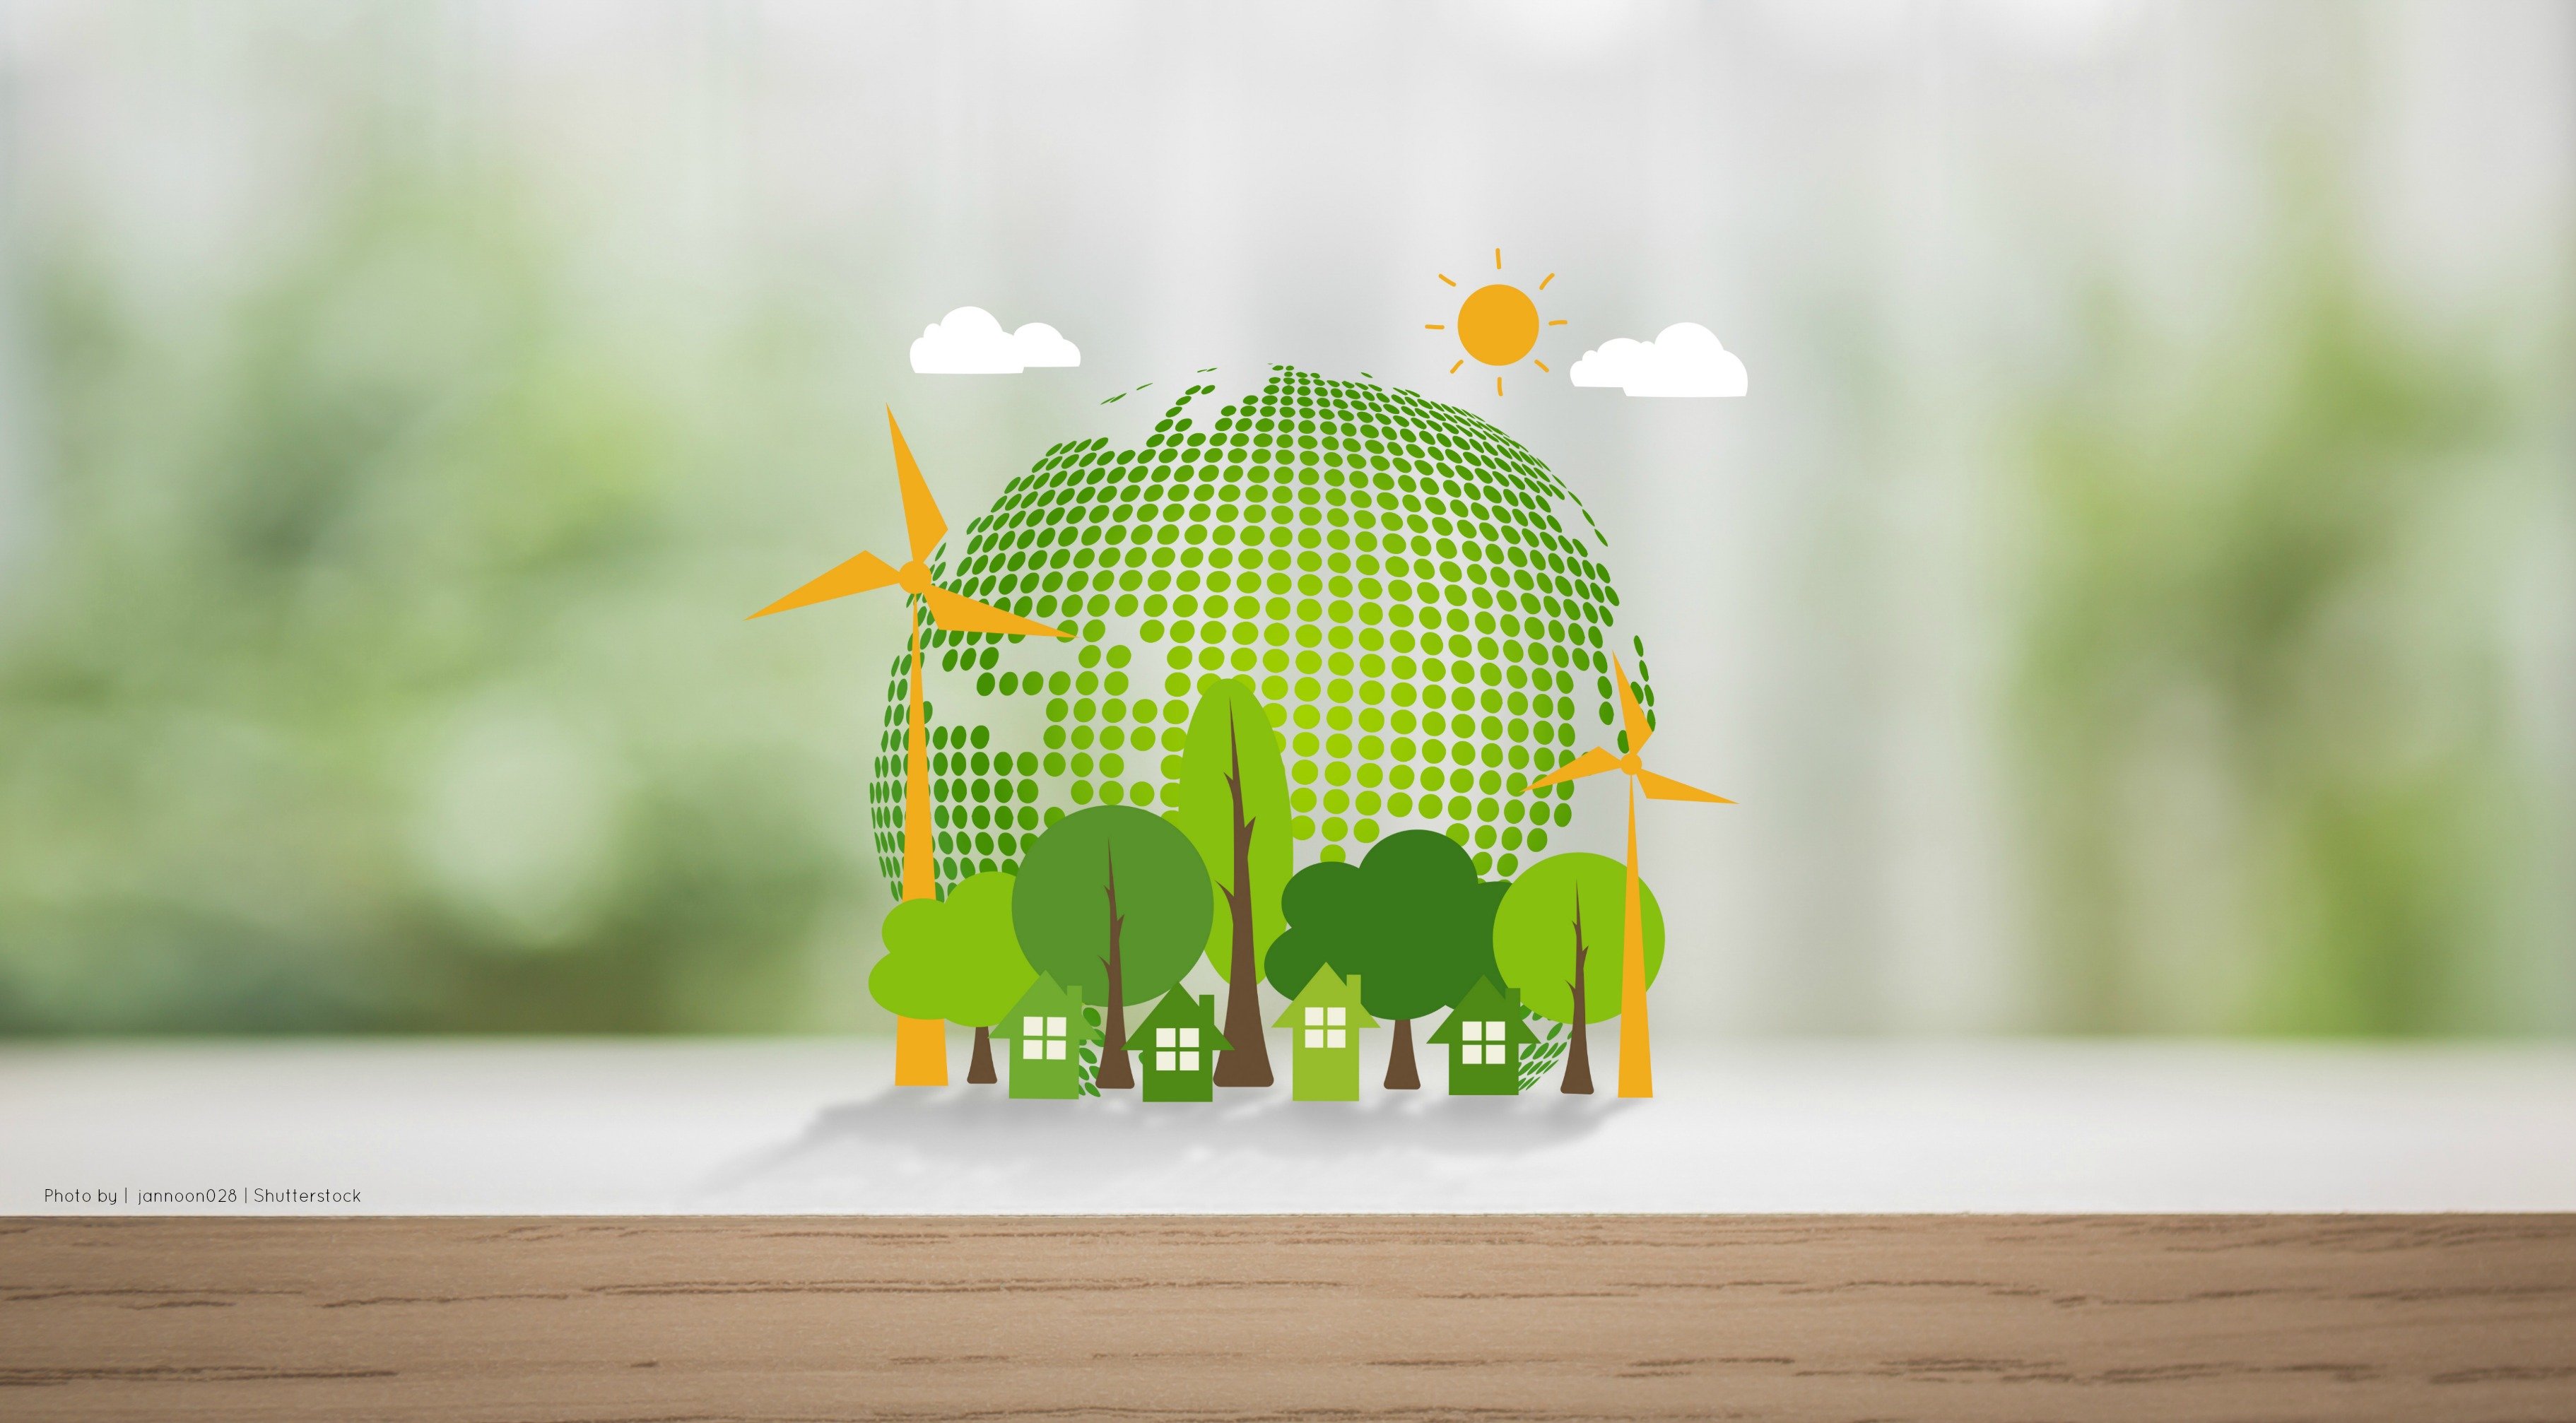 Going Green with the Cloud